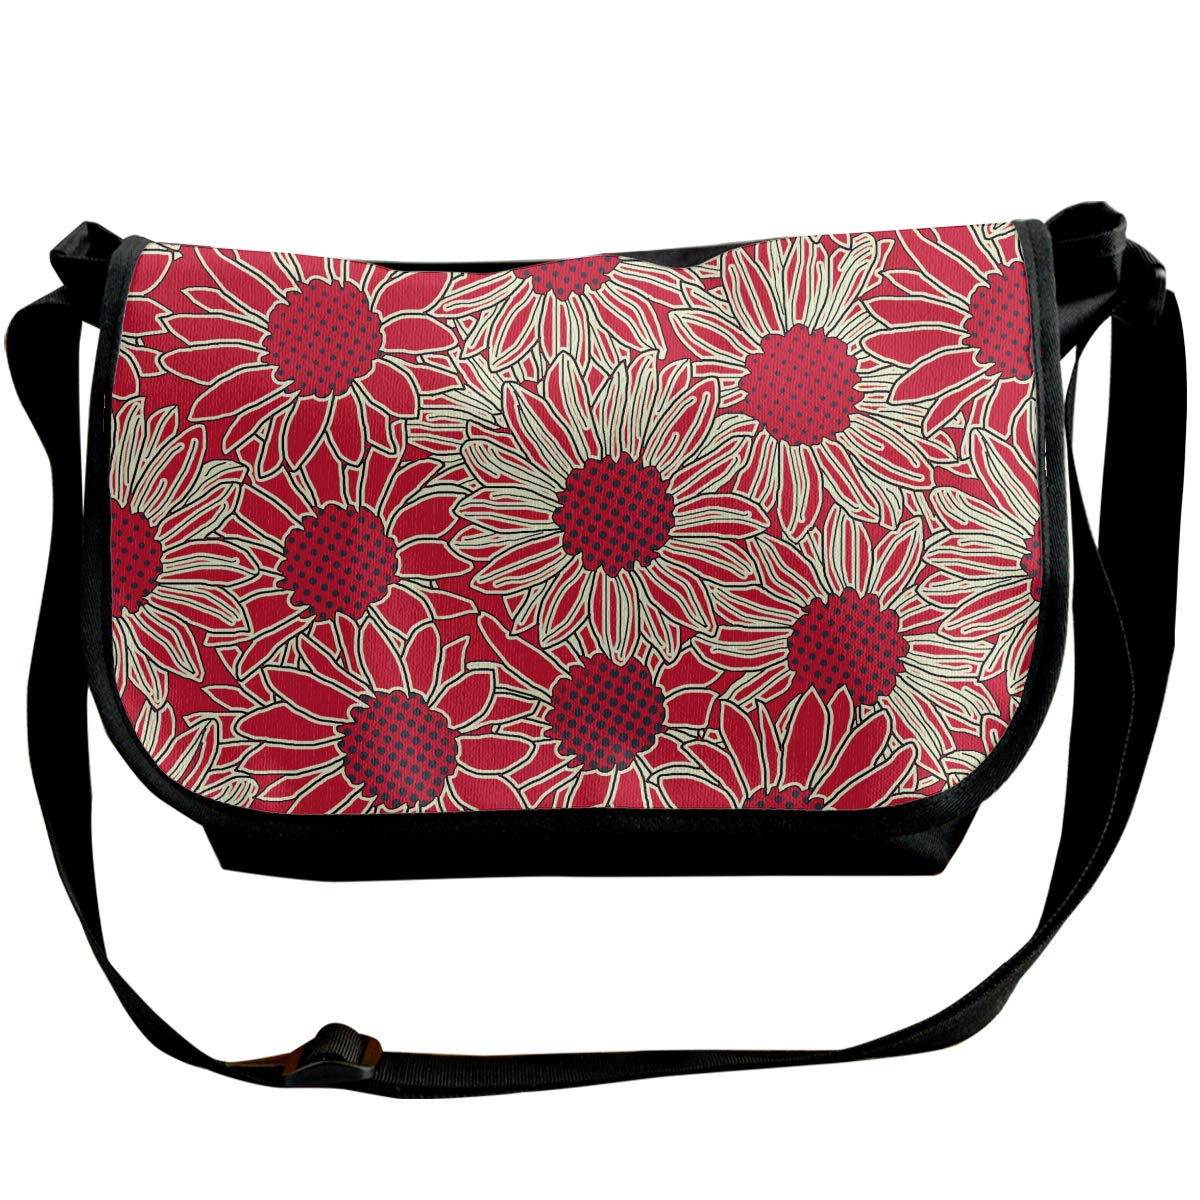 XIANGXIANG SHOP Floral Pattern Background Fashion Unisex Casual Popular Outdoor Sling Bag Messenger Bag Shoulder Bag